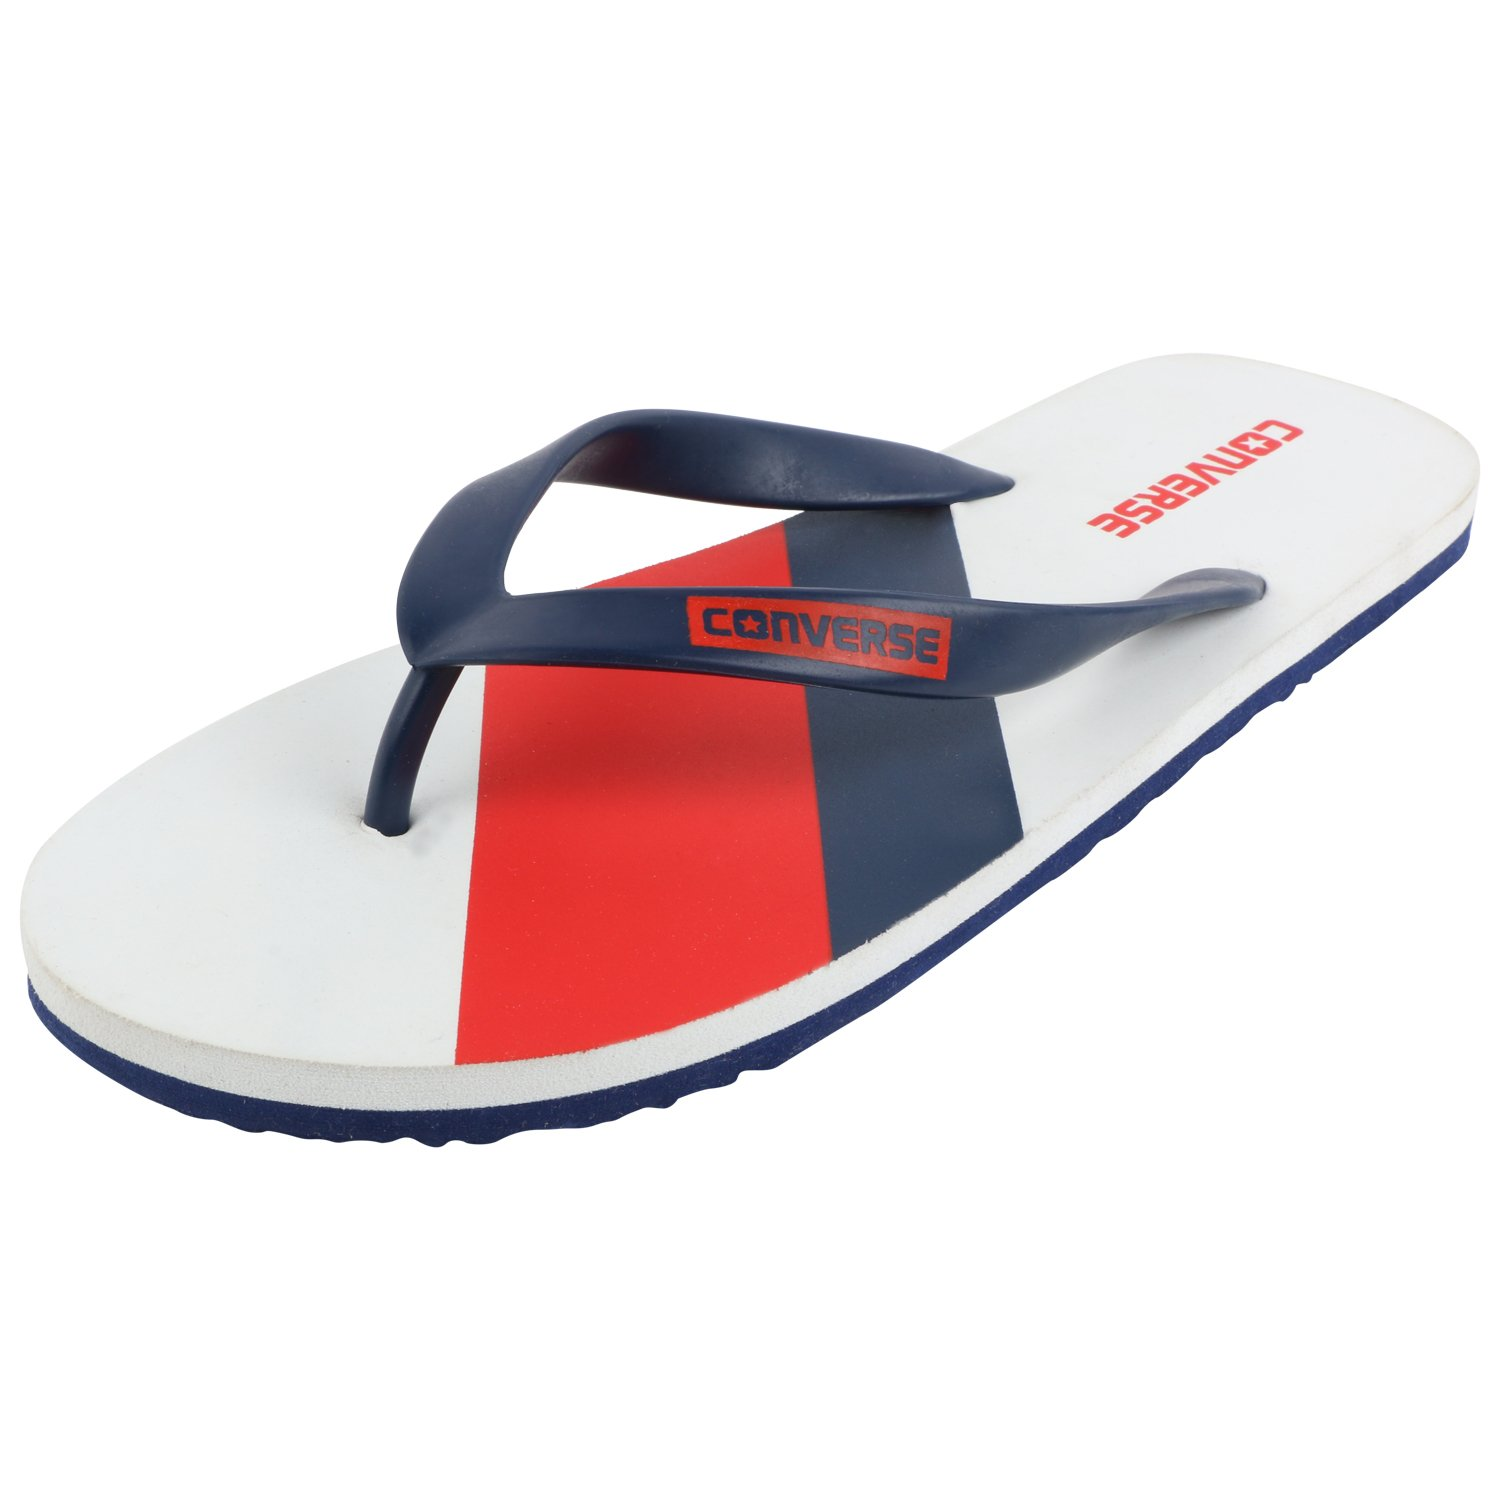 f96218942cf91 Converse Men s White Red Navy Flip-Flops and House Slippers - 6 UK India  (39 EU)  Buy Online at Low Prices in India - Amazon.in